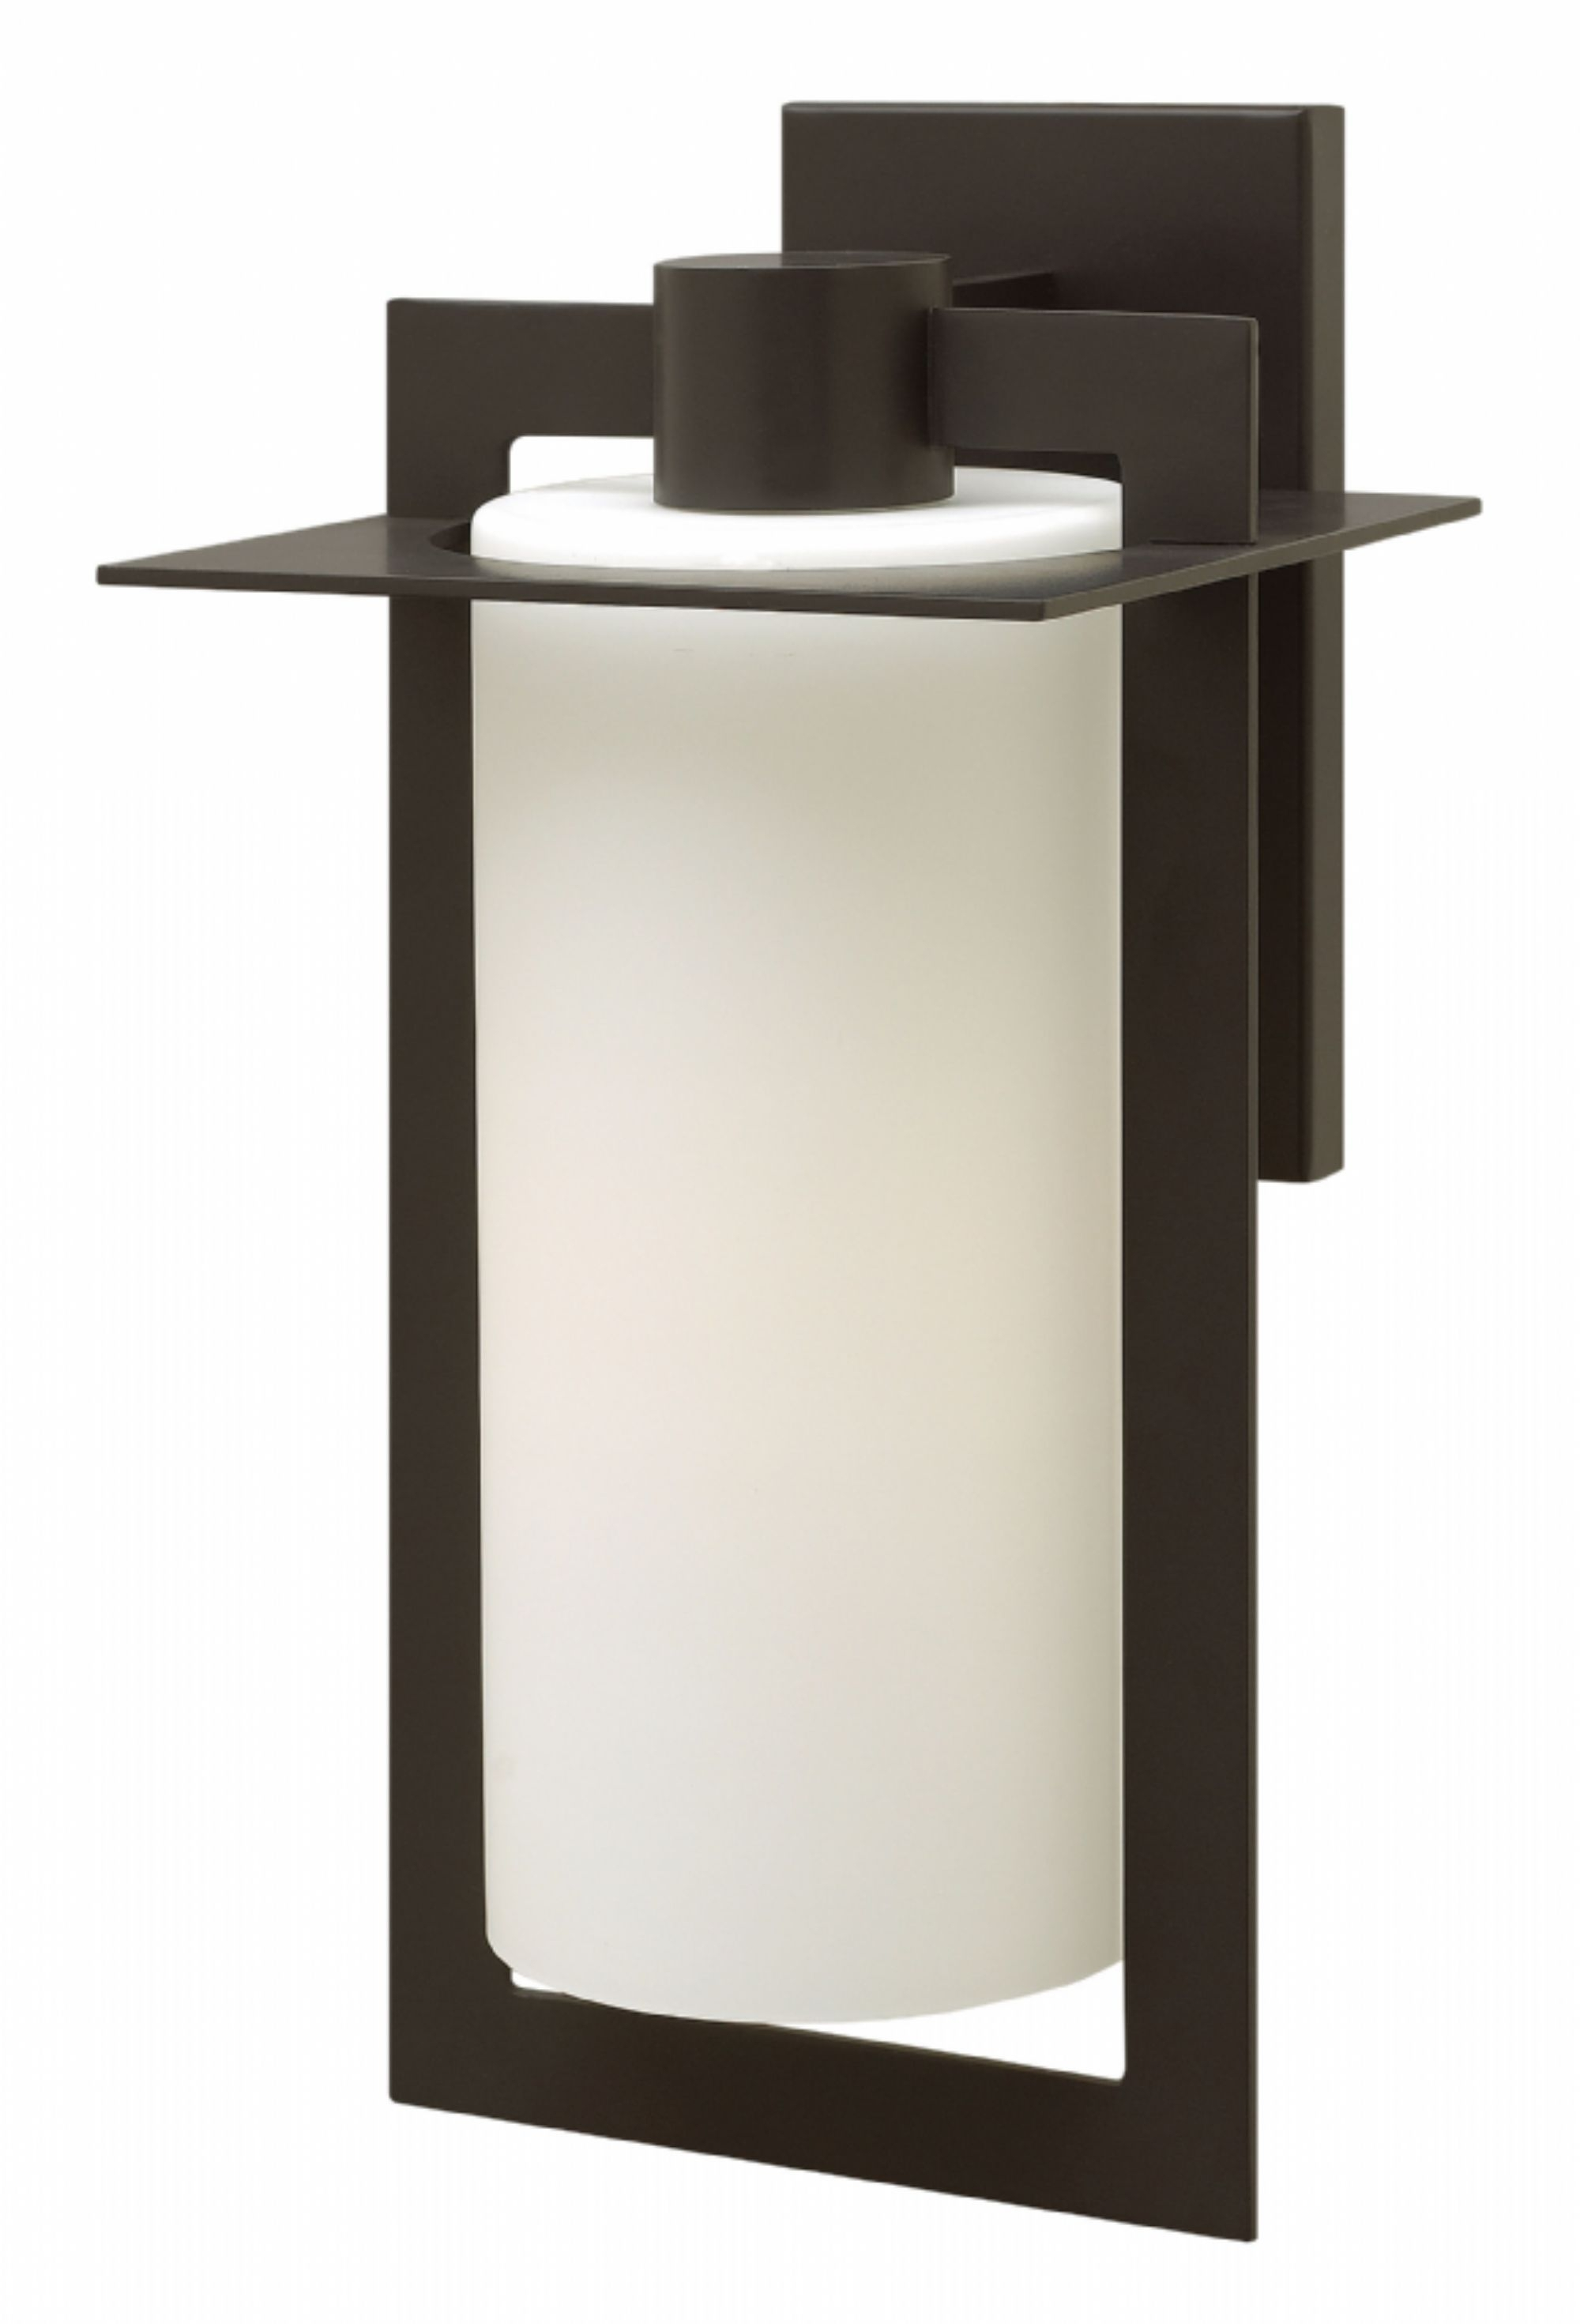 Bronze Colfax > Exterior Wall Mount Intended For Contemporary Hinkley Lighting (#2 of 15)